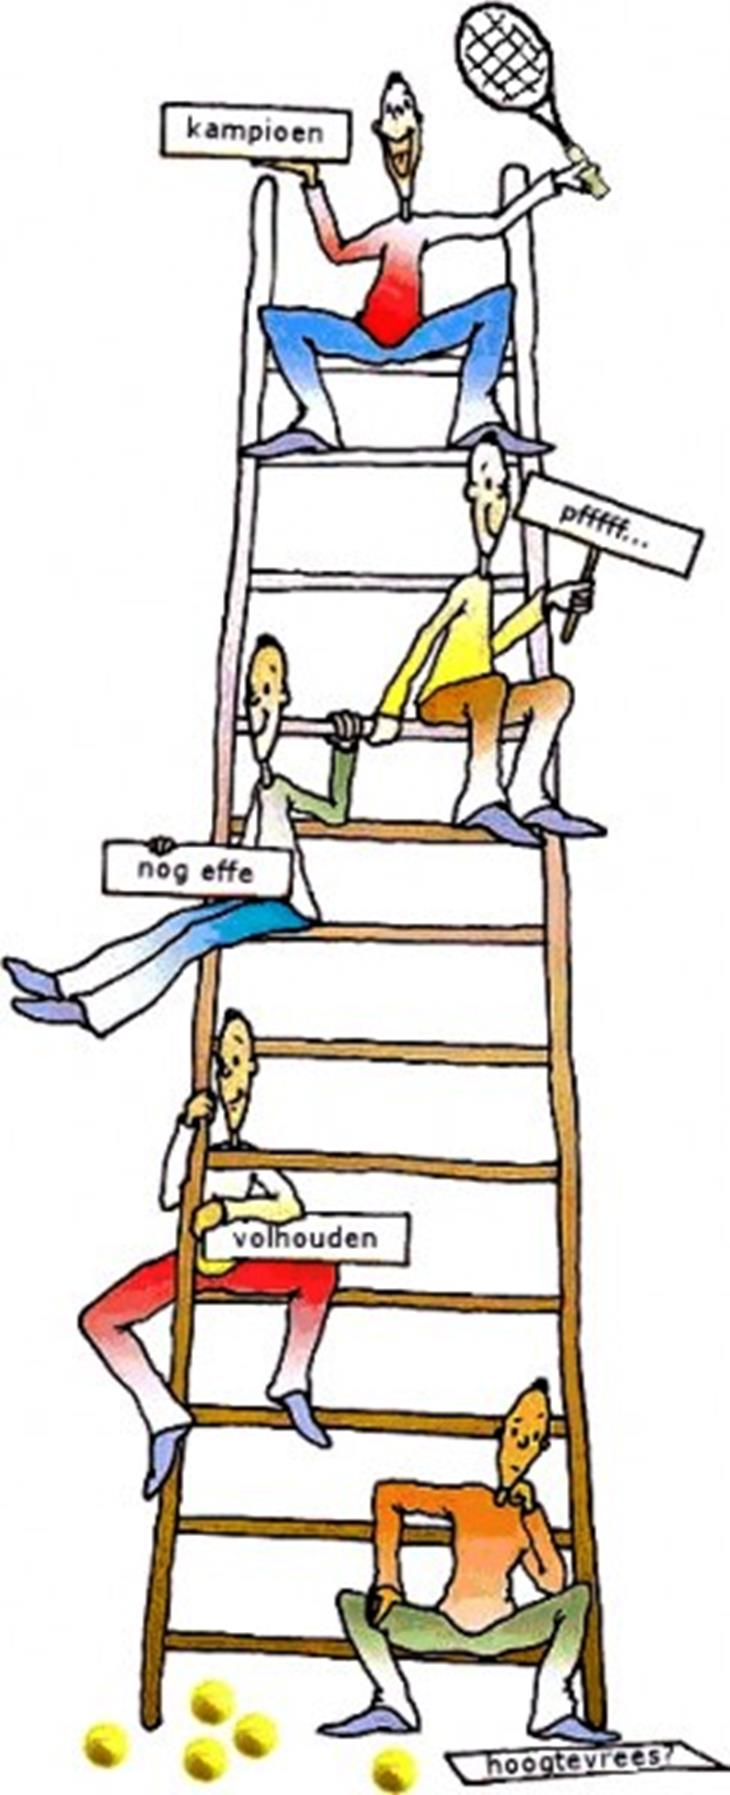 laddercompetitie TW.png